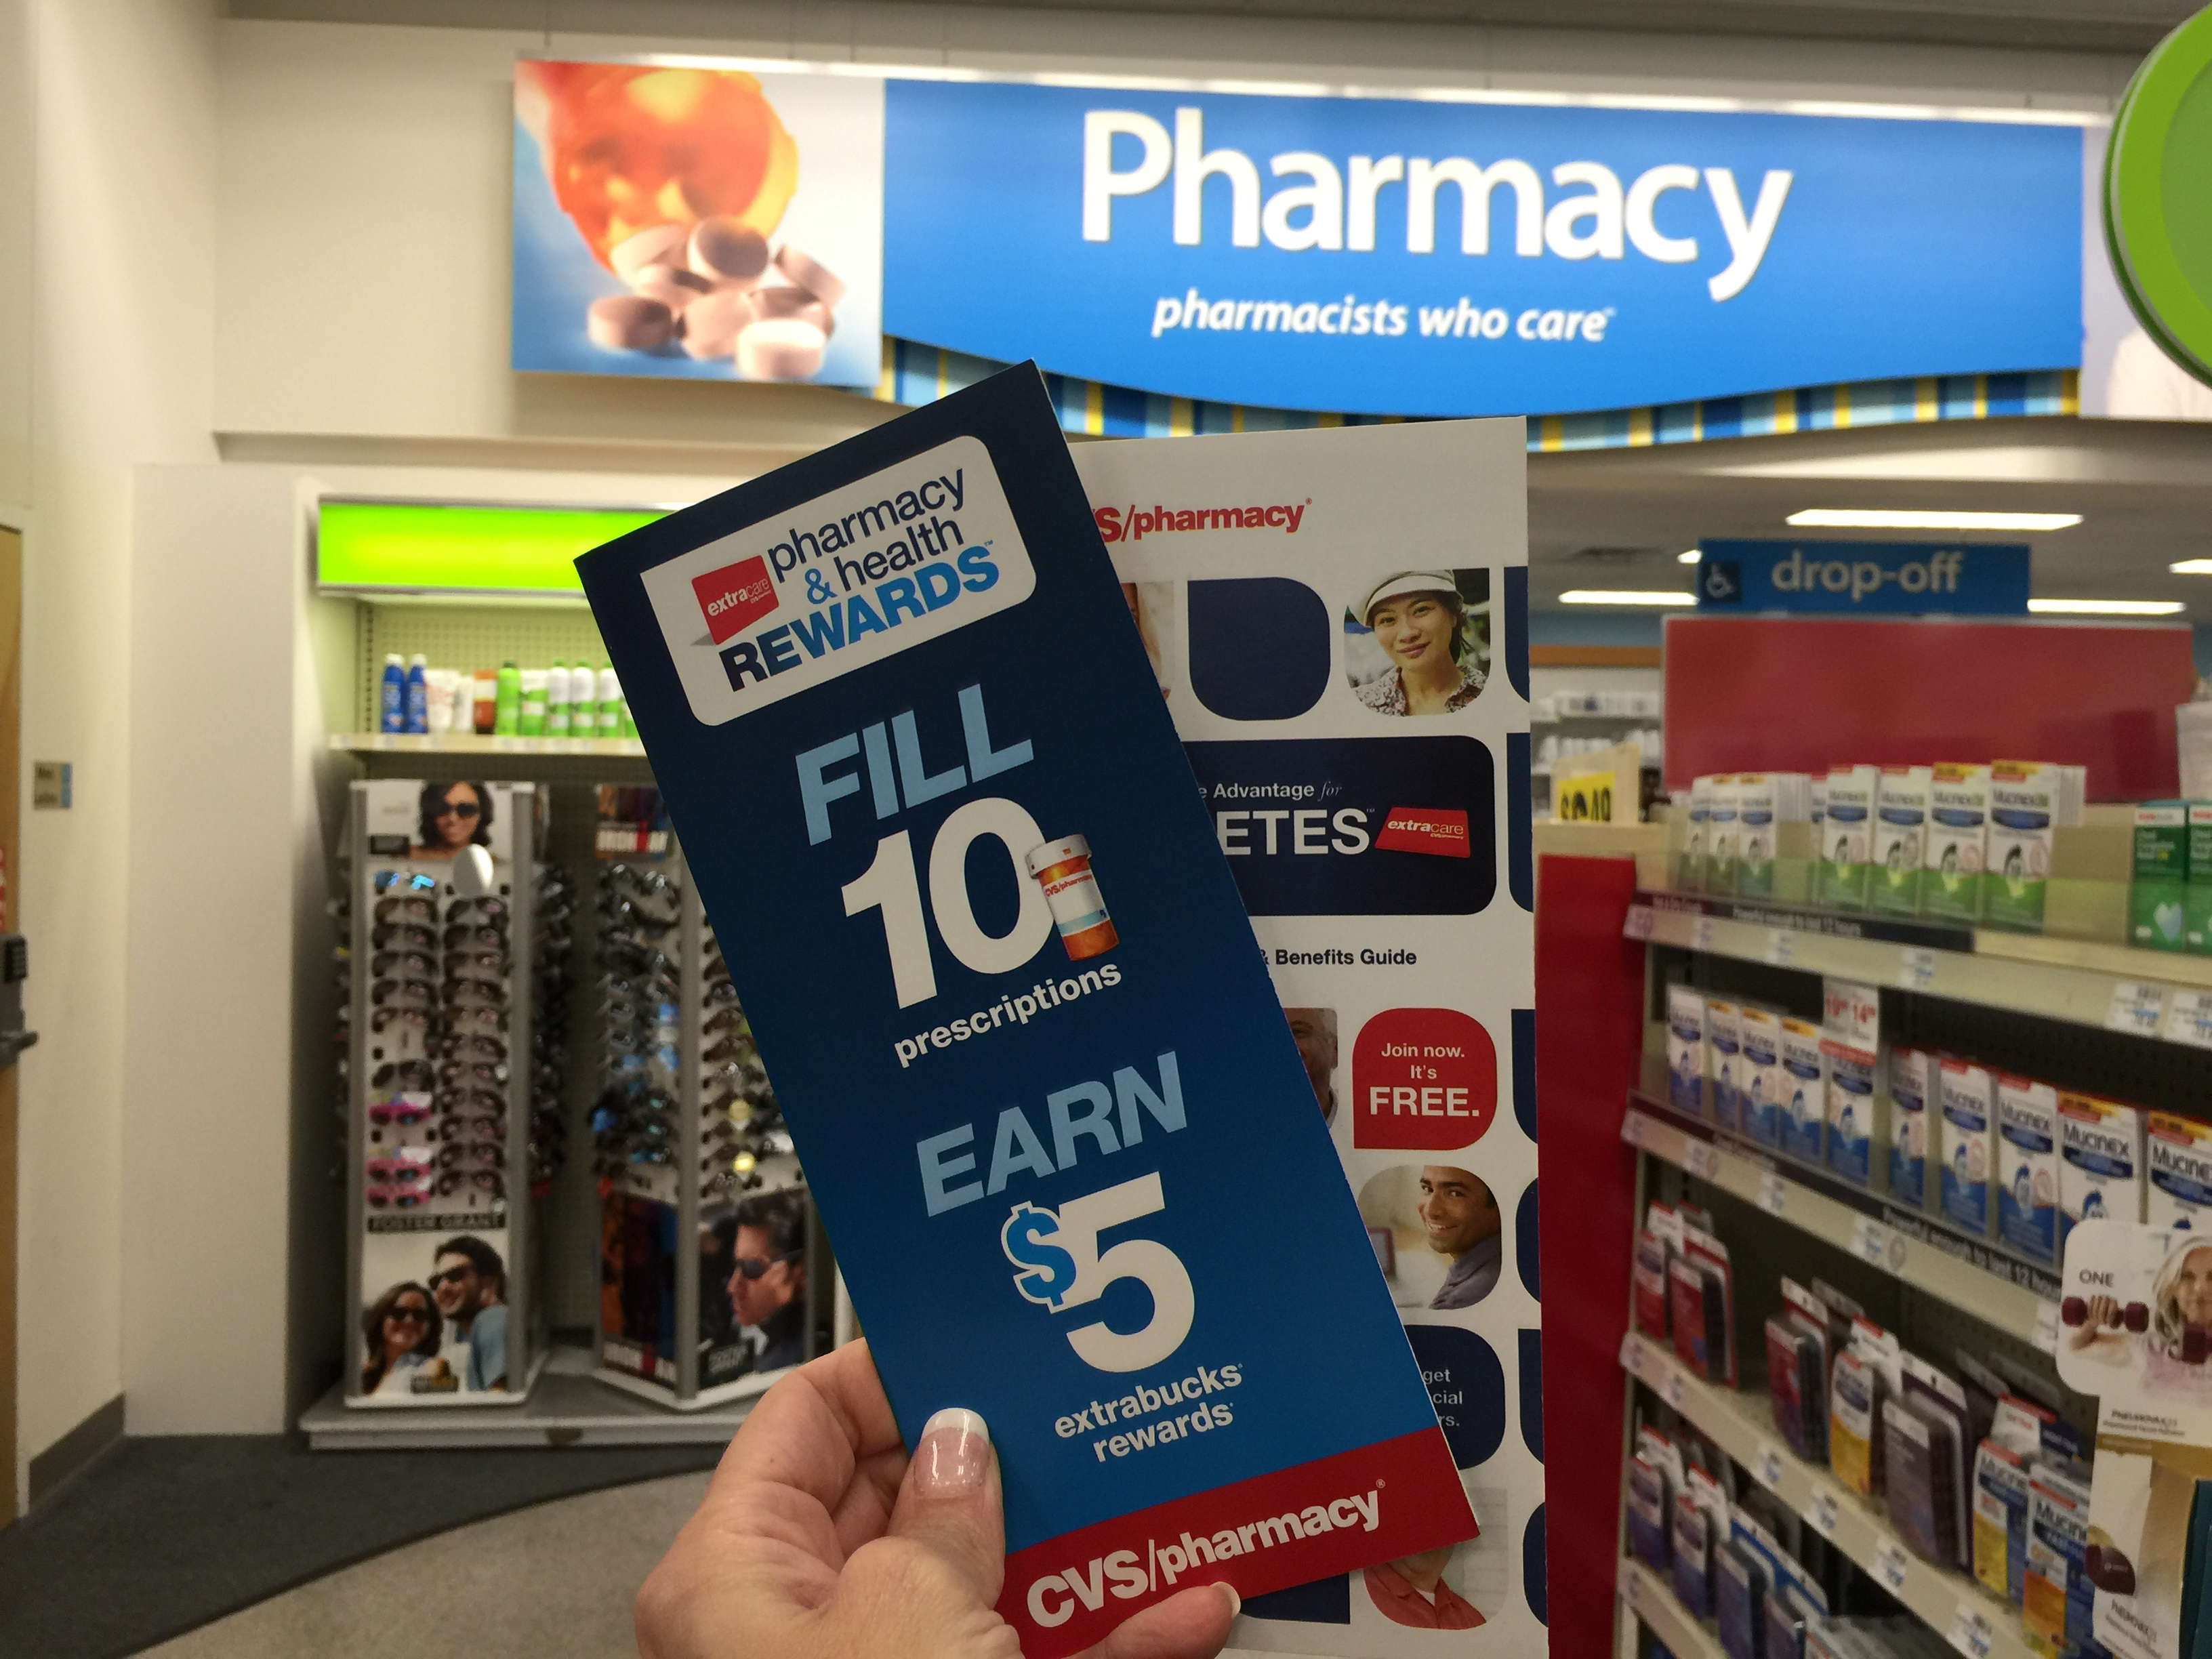 get free CVS pharmacy health screenings and a FREE $5 coupon! – CVS Pharmacy Health Rewards